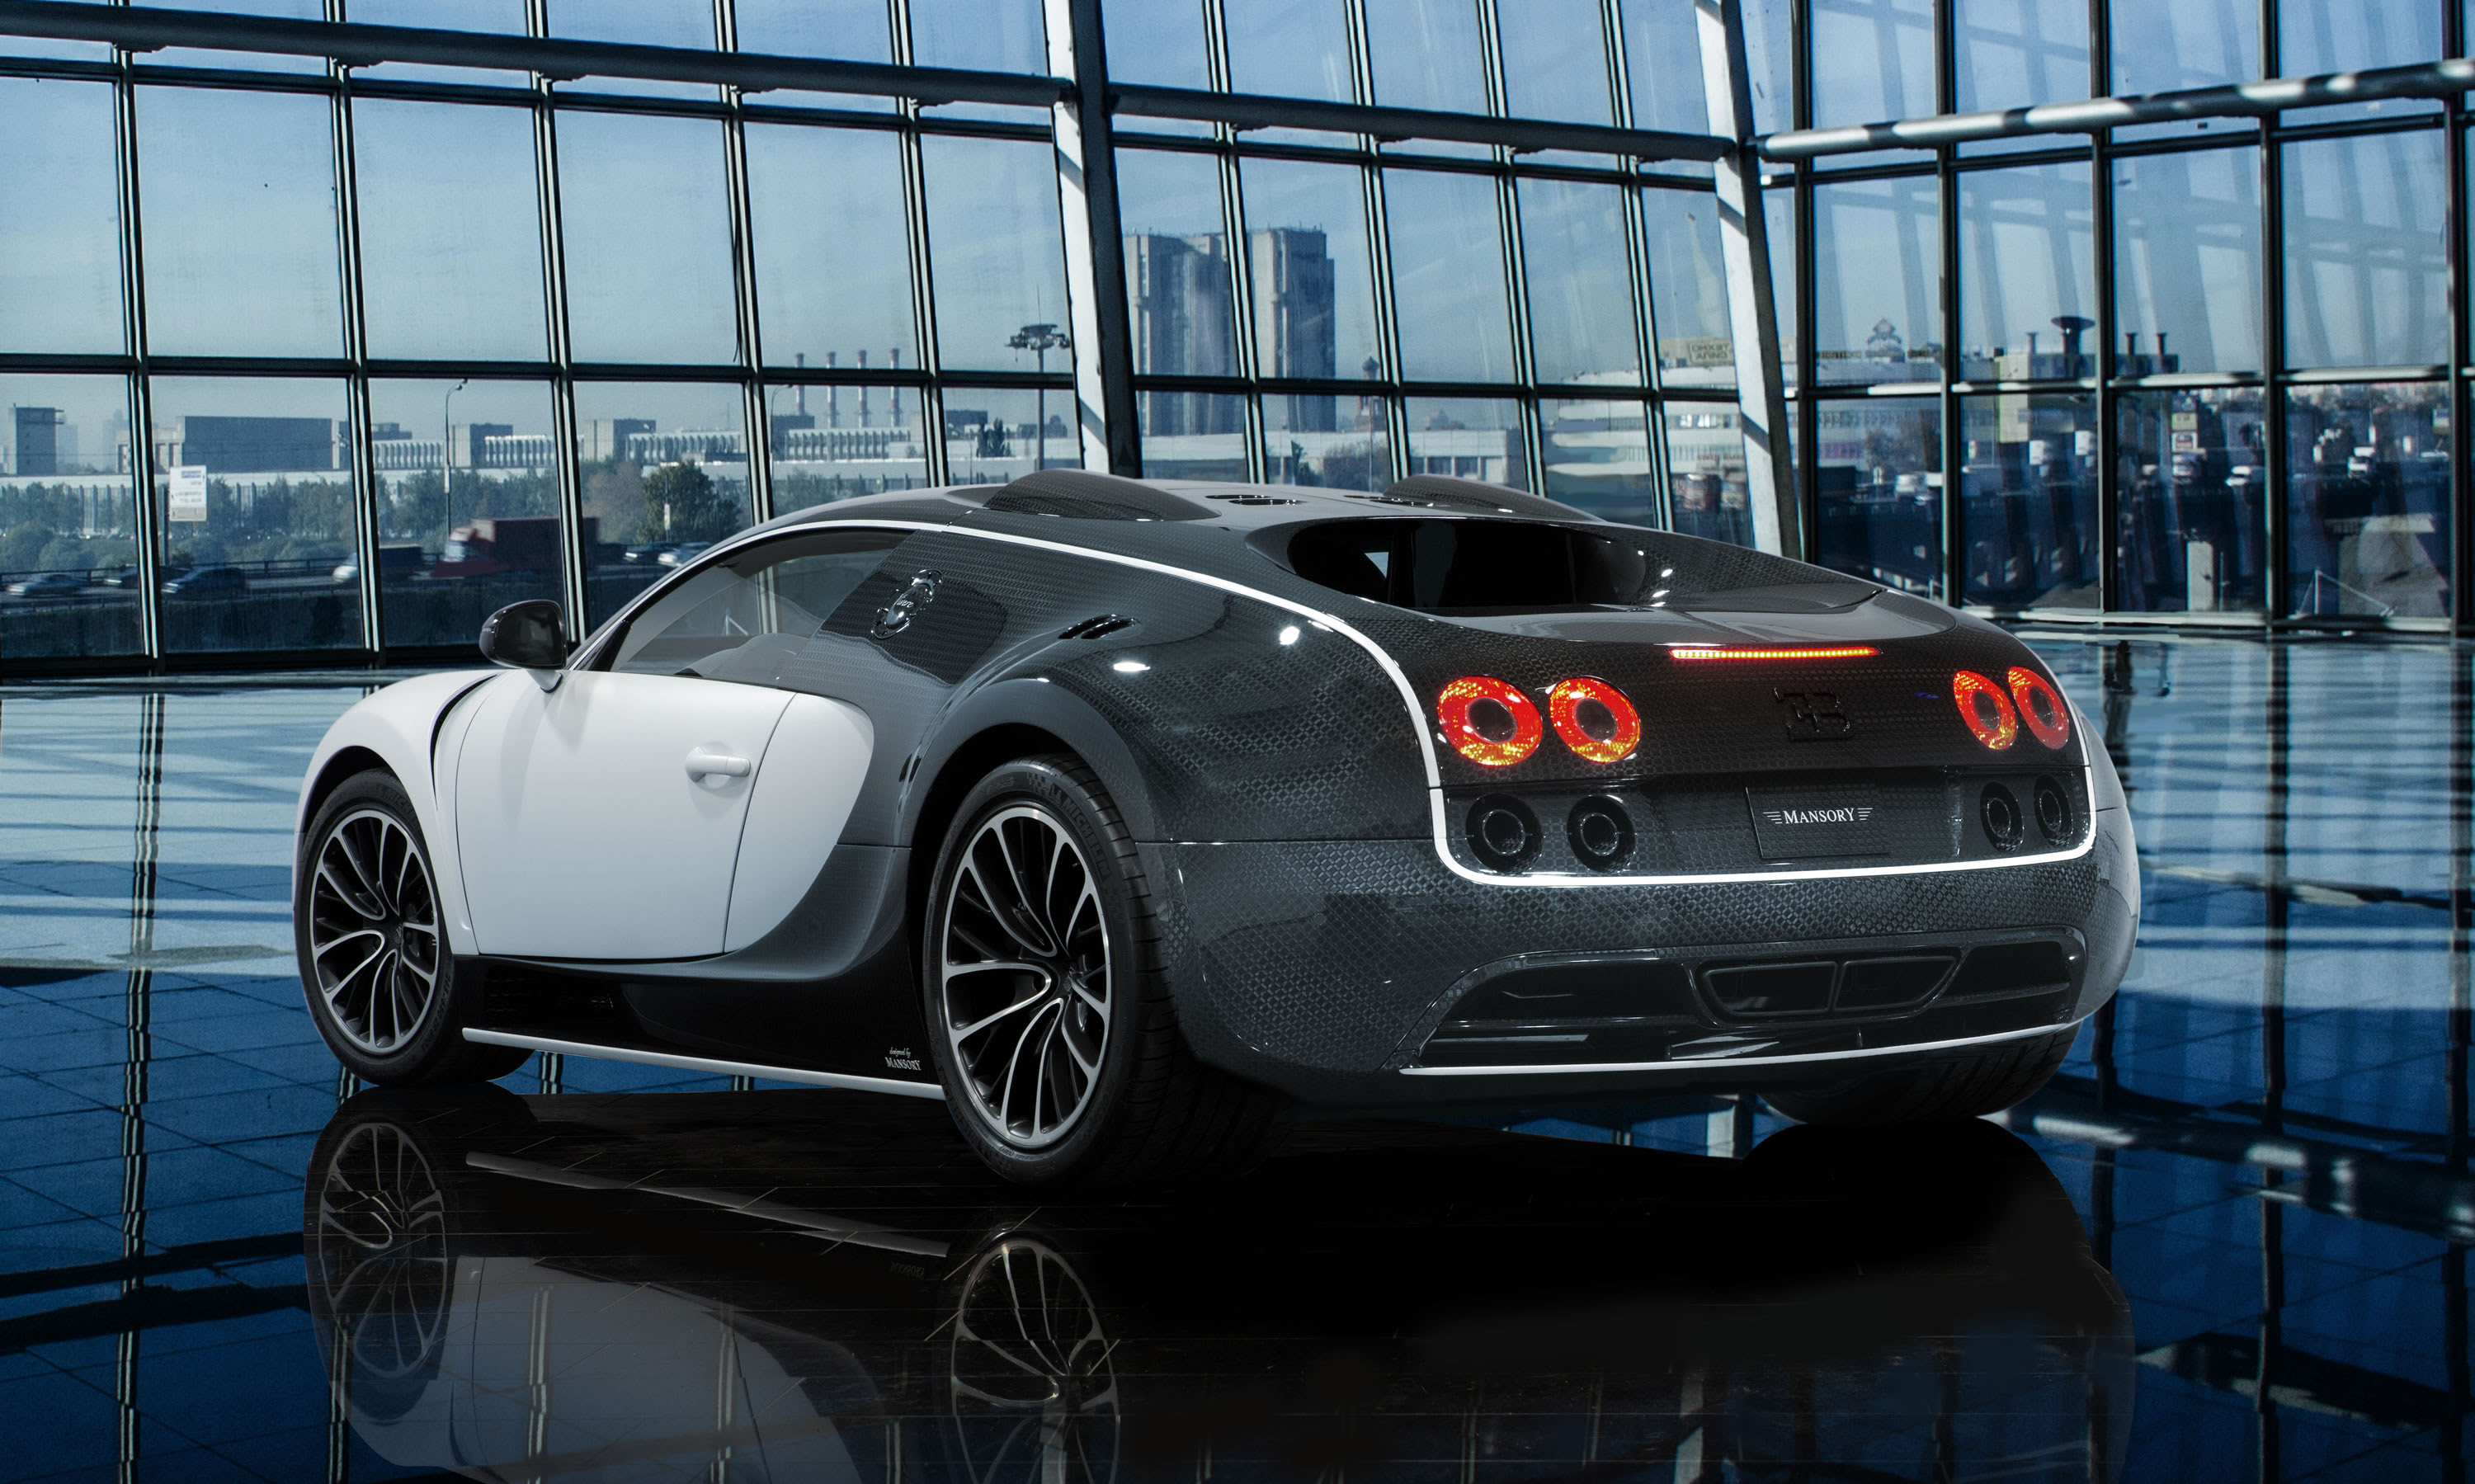 2014 Bugatti Veyron 16.4 Vivere by Mansory Photos, Specs and Review - RS